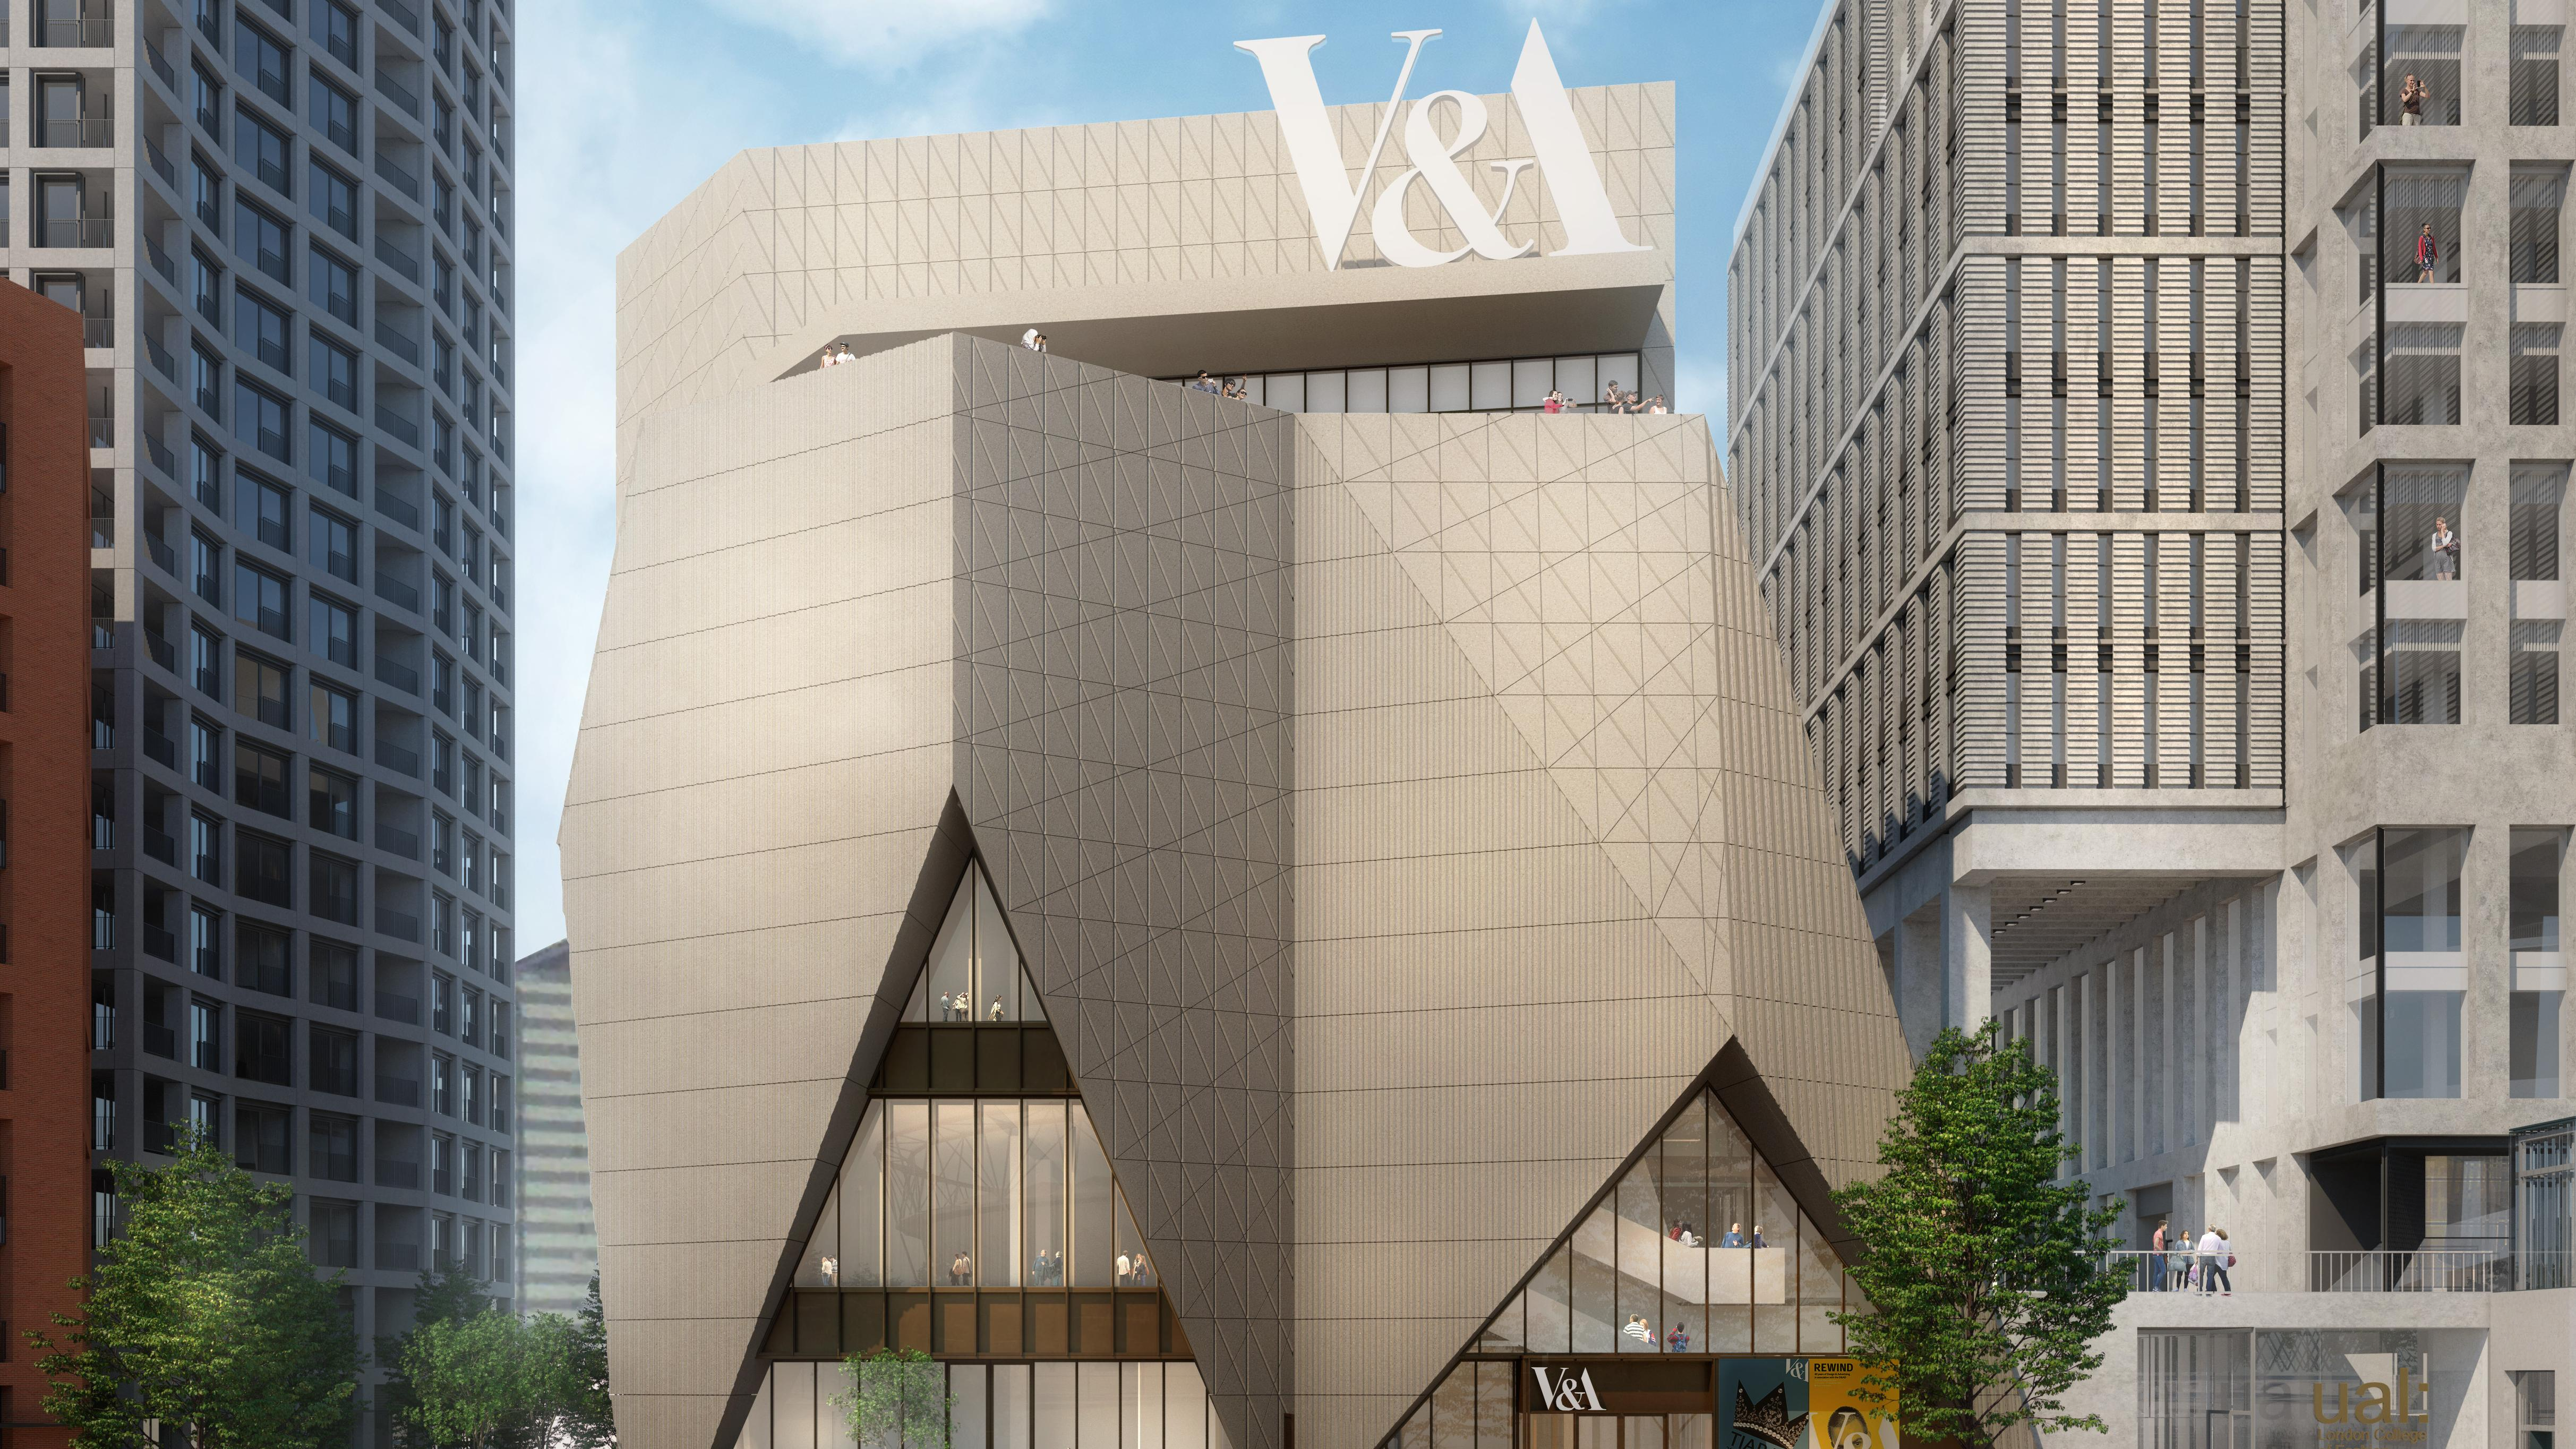 New V&A building is inspired by Fifties gown | News | The Times